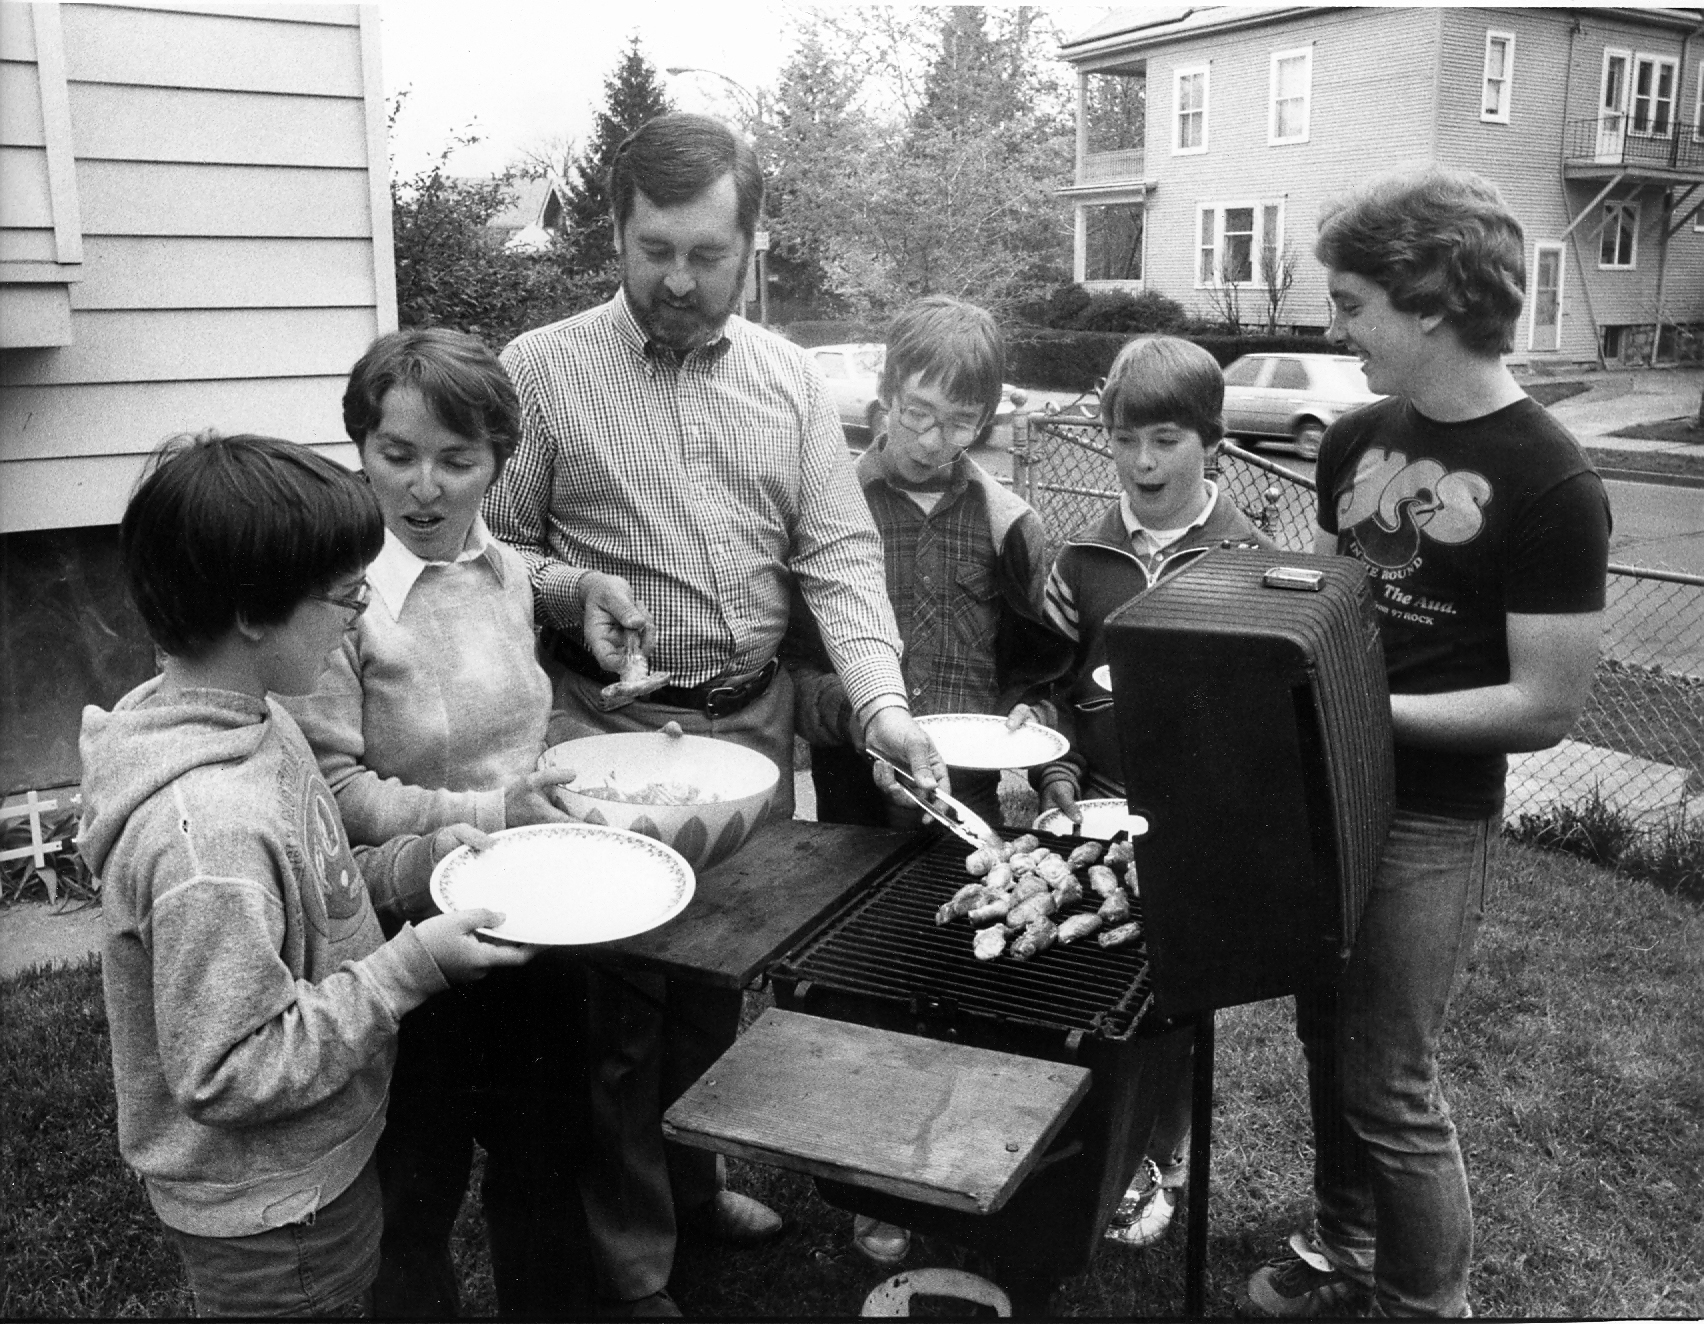 George W. Schaeffer, center, cooks up his award-winning wings in 1984 with, from left, youngest son Dennis, wife Kathleen, and sons Christopher, Jonathan and Michael. (Buffalo News file photo)